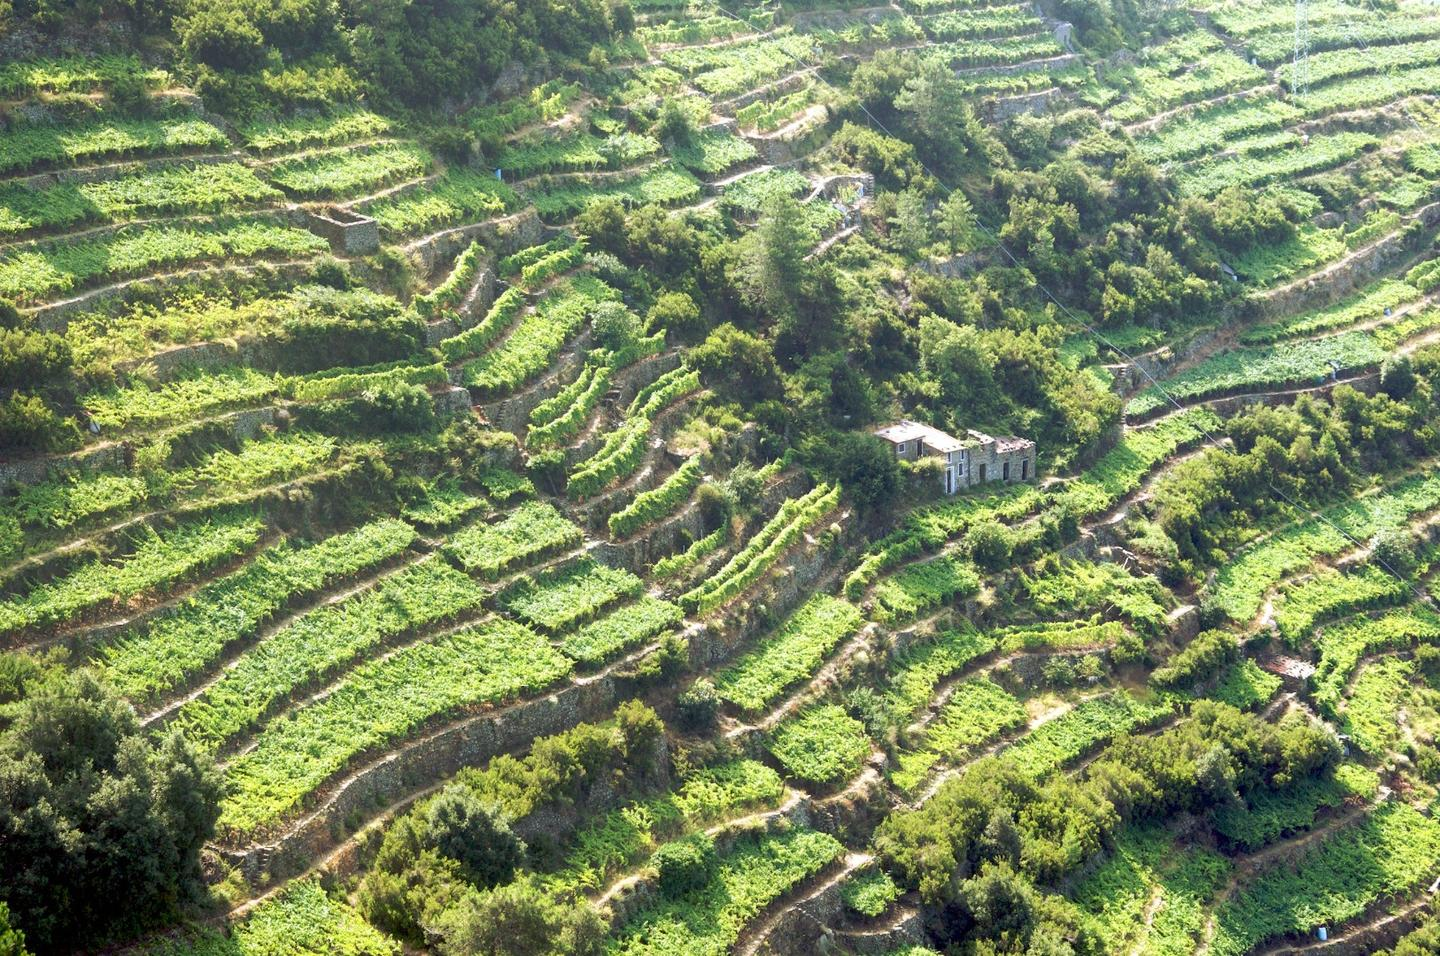 Terrace farming in Liguria, Northern Italy